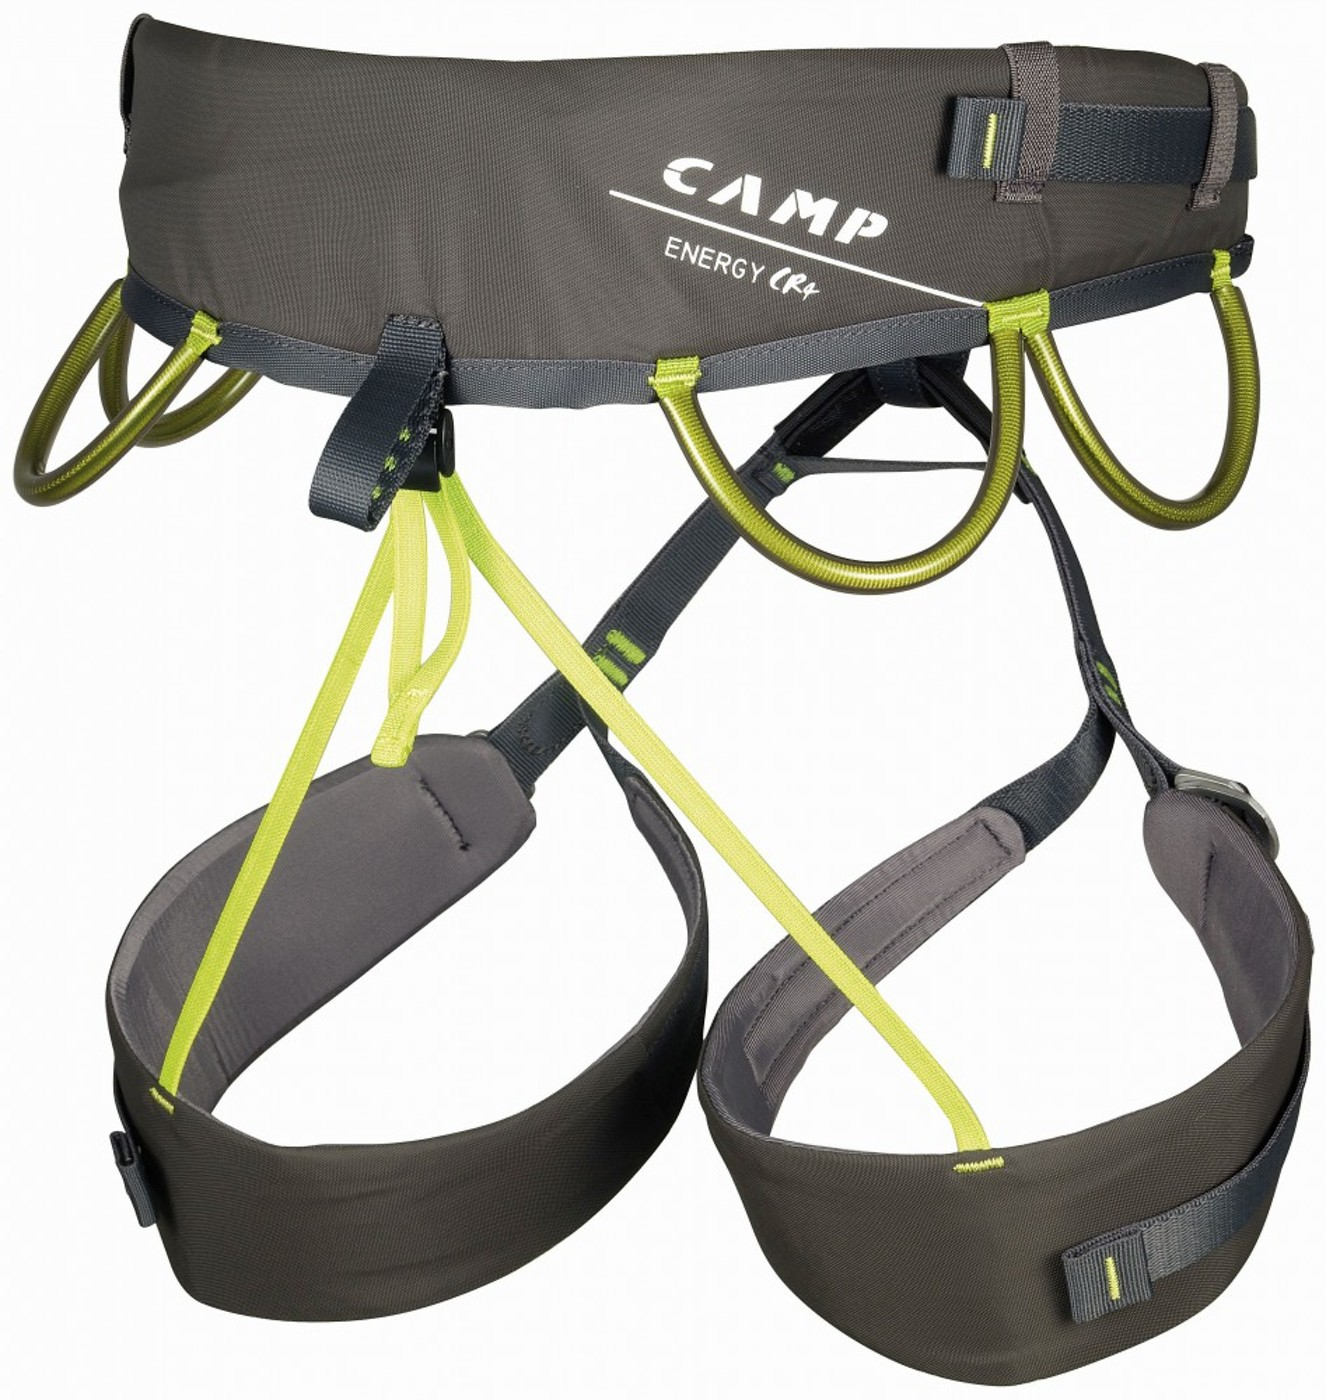 CAMP ENERGY CR 4